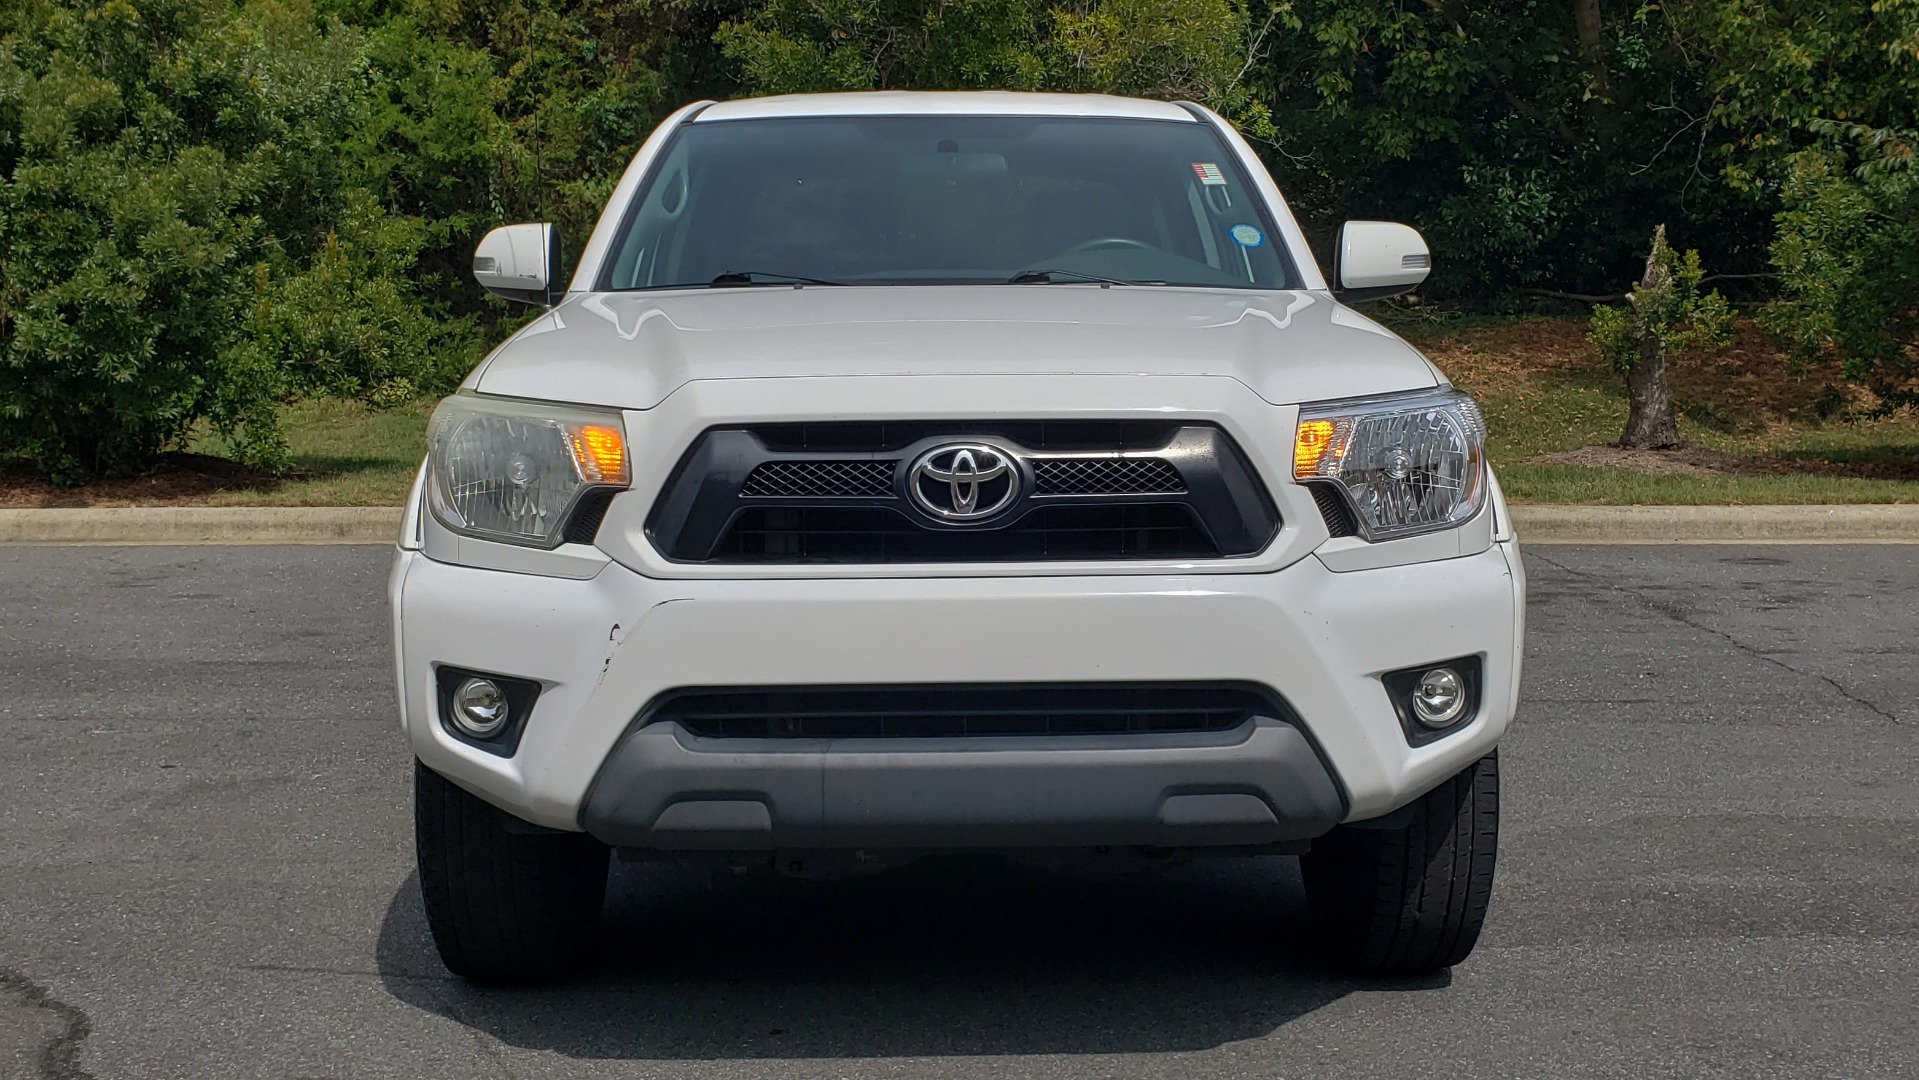 Used 2015 Toyota TACOMA PRERUNNER DOUBLE CAB/ 4-CYL / 4-SPD AUTO / SR PKG / CONV PKG for sale $15,995 at Formula Imports in Charlotte NC 28227 16